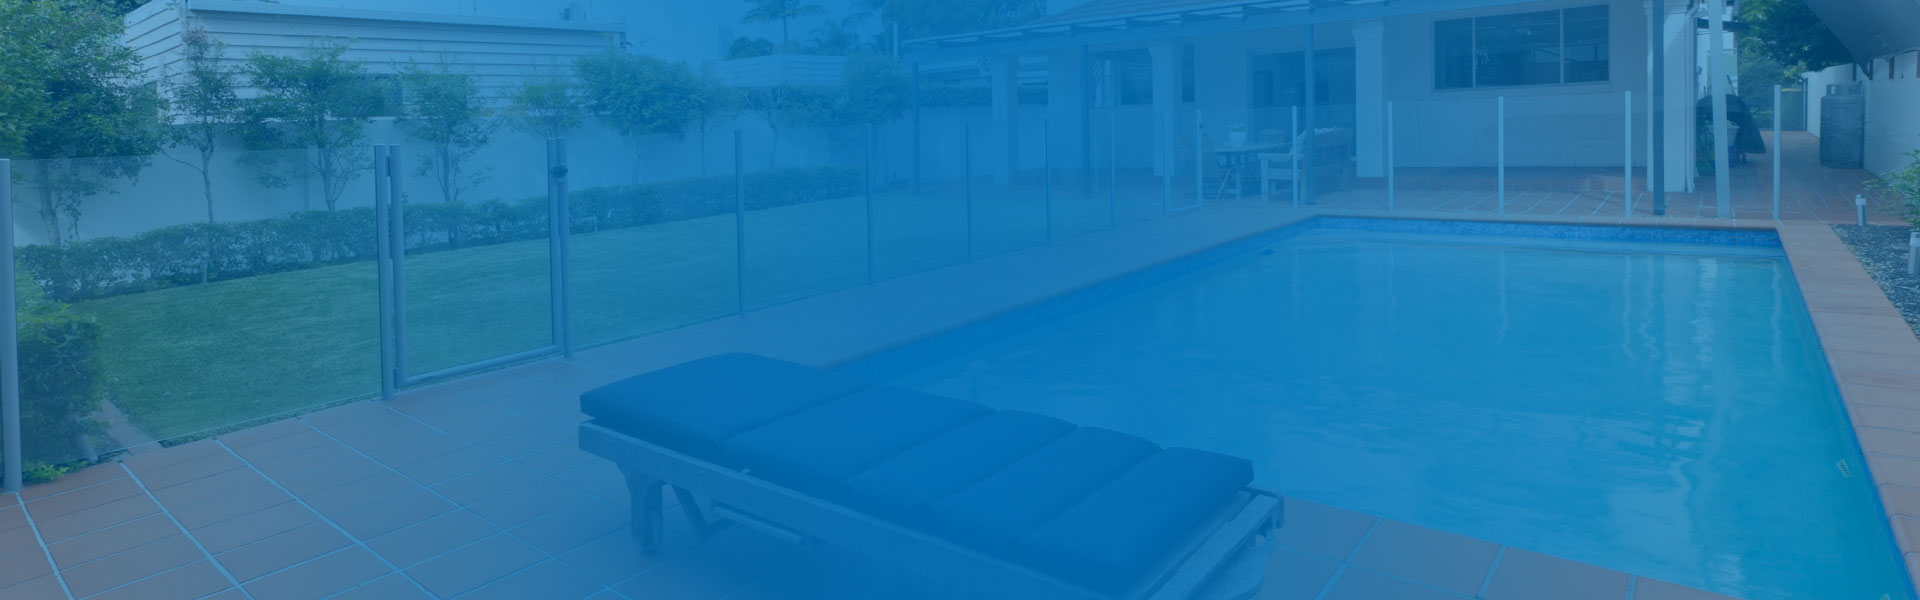 South East Leak Detection Test To See If Your Pool Has A